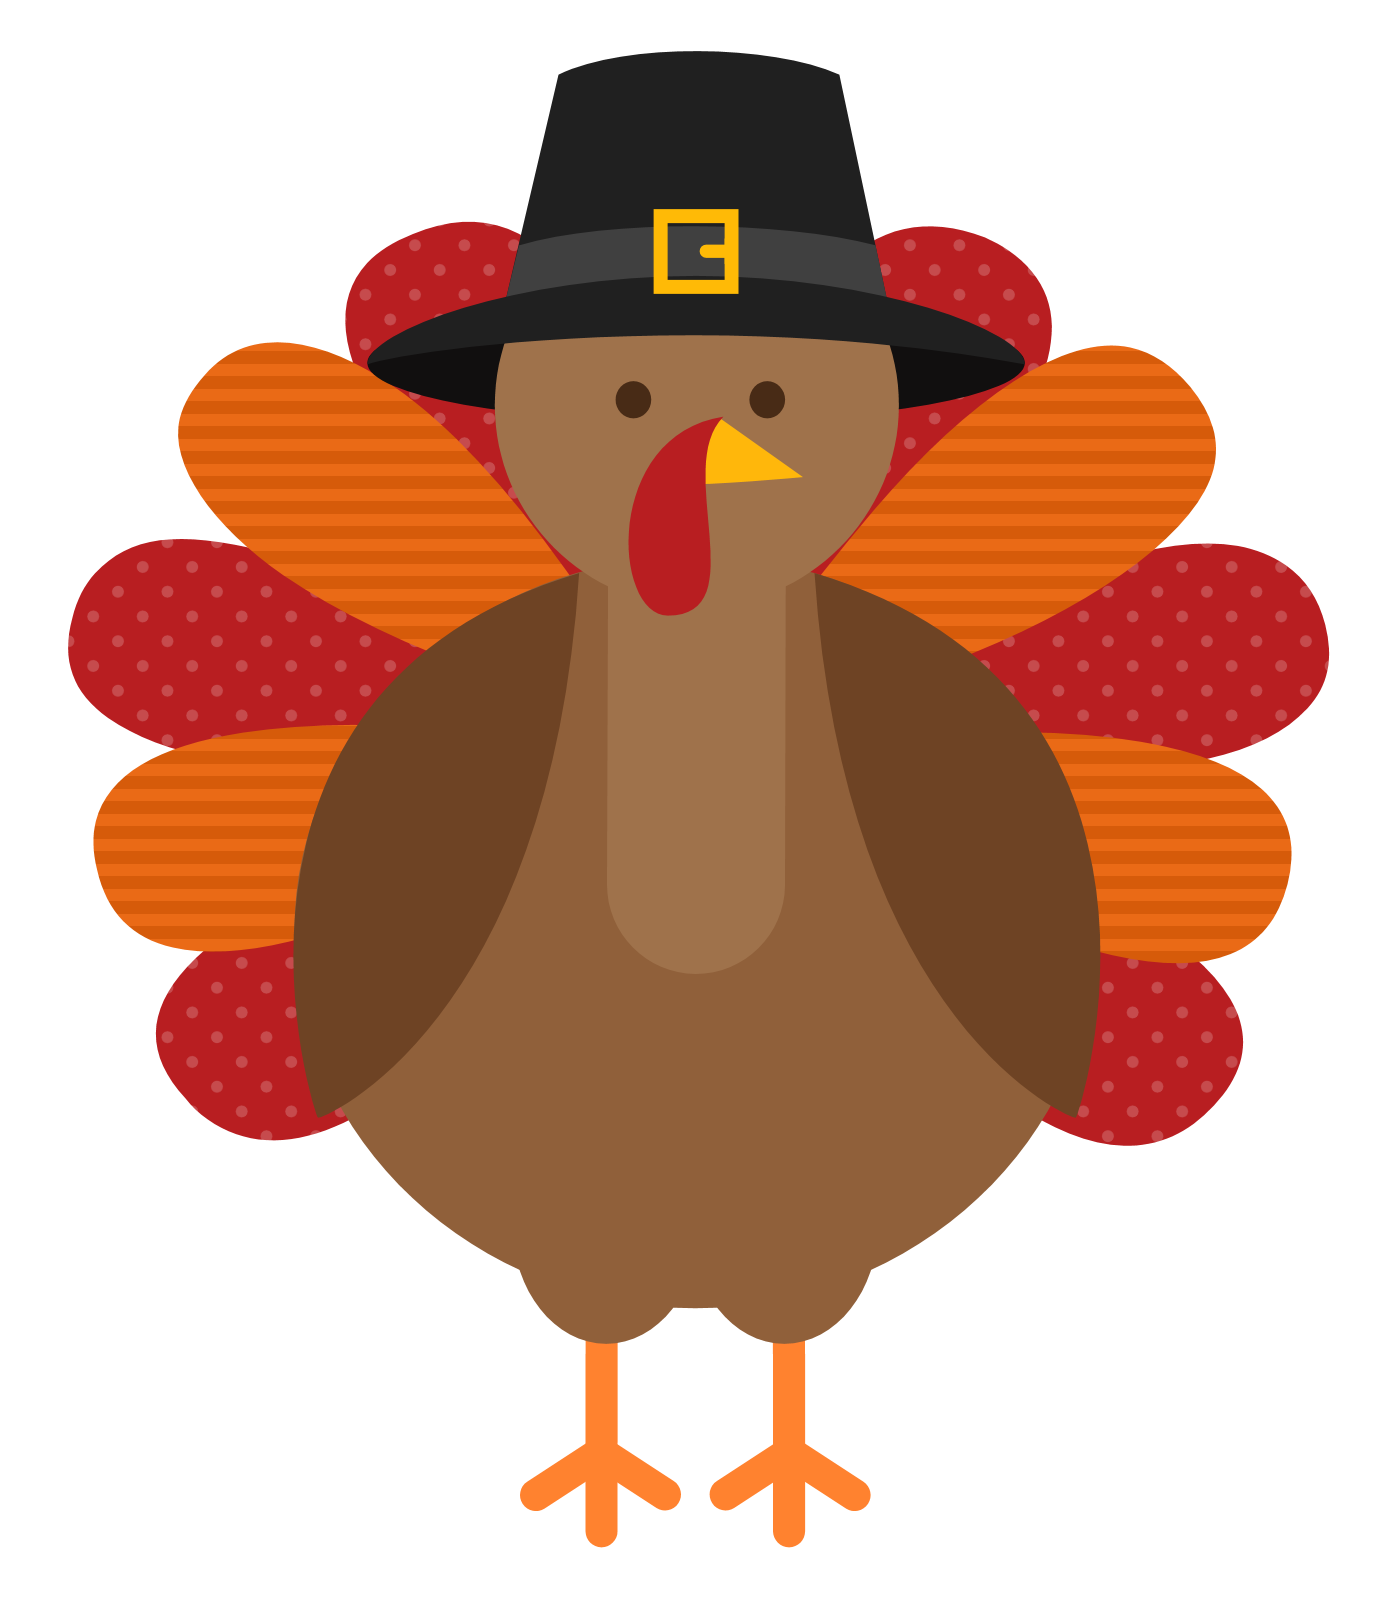 Box turkey call clipart svg transparent library Blog Archives - Page 7 of 21 - Laurel Ridge Golf Club, NC svg transparent library